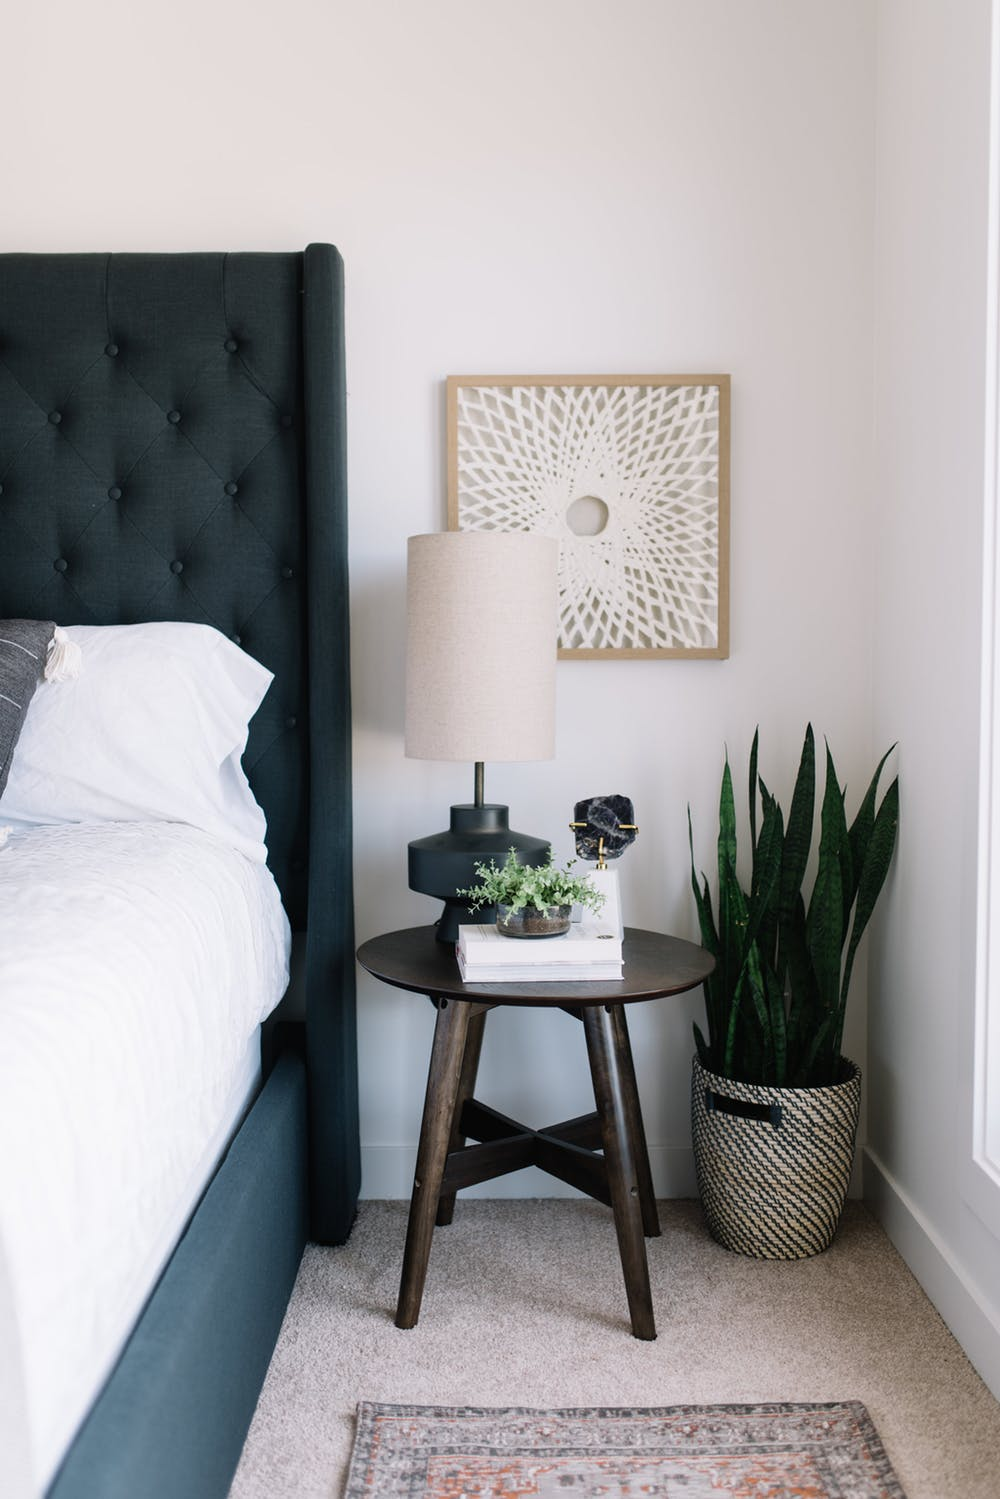 5 Modern Nightstands - Ideas For Your Bedroom Design modern nightstands 5 Modern Nightstands – Ideas For Your Bedroom Design 5 Modern Nightstands Improve your bedroom decor and organize the space 2